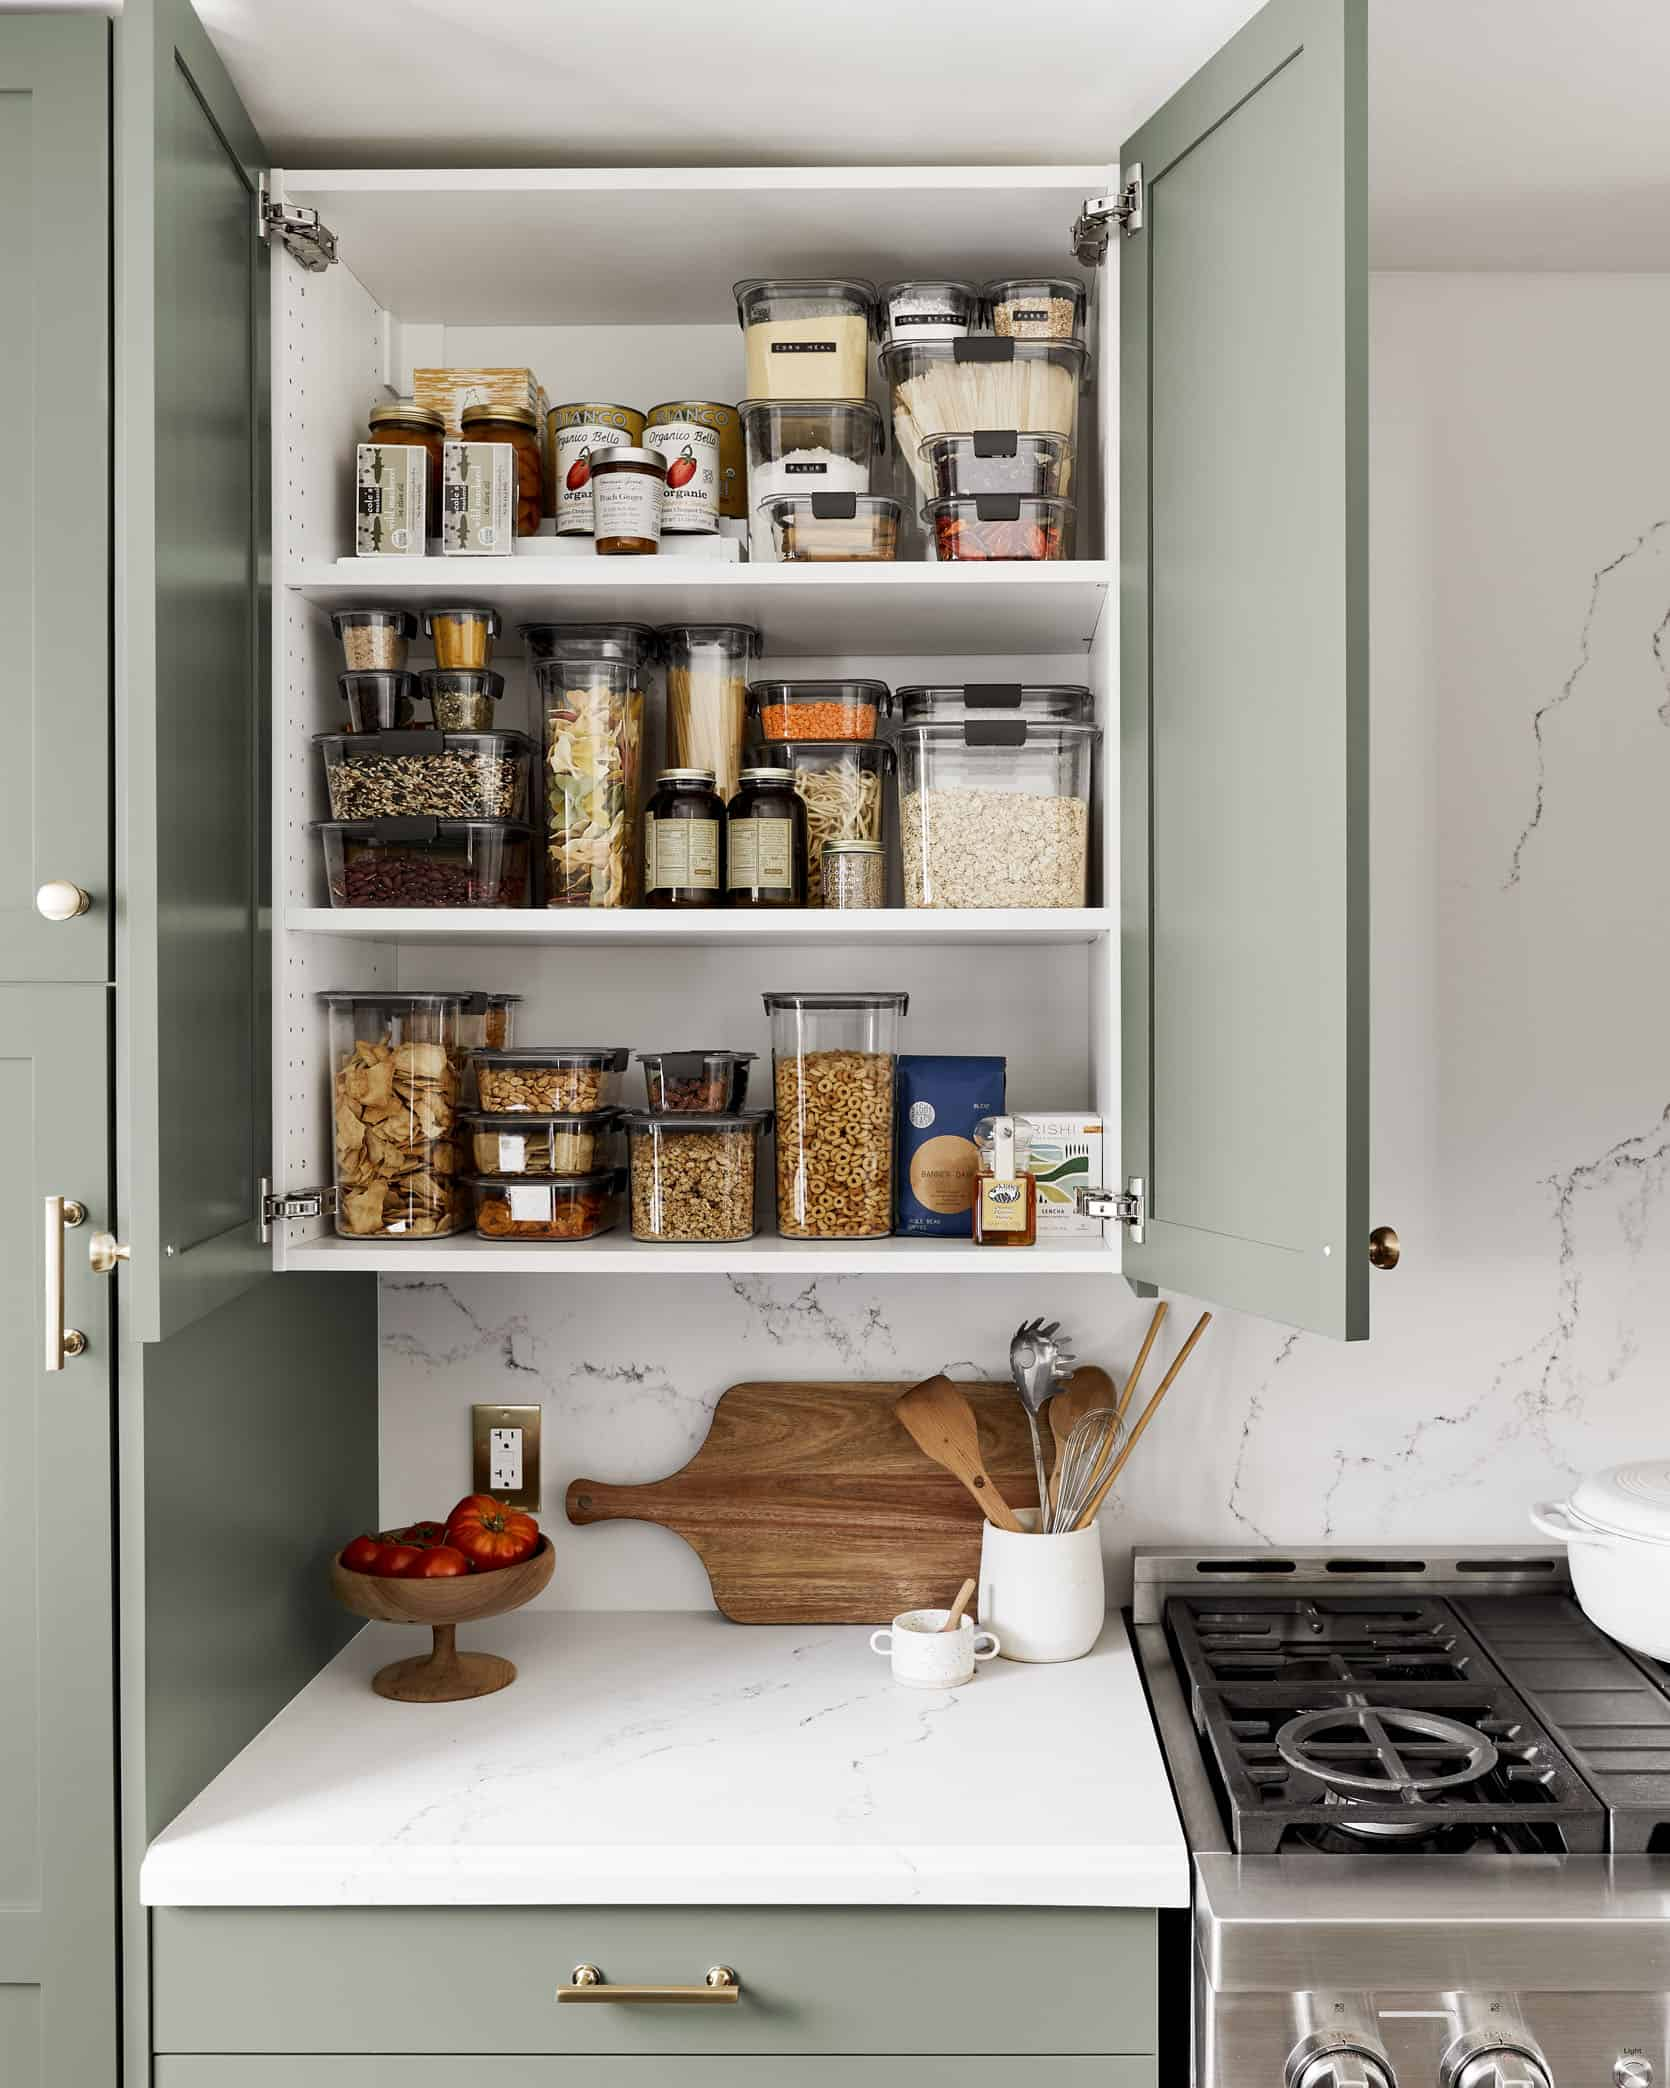 this is a kitchen storage with reusable jars